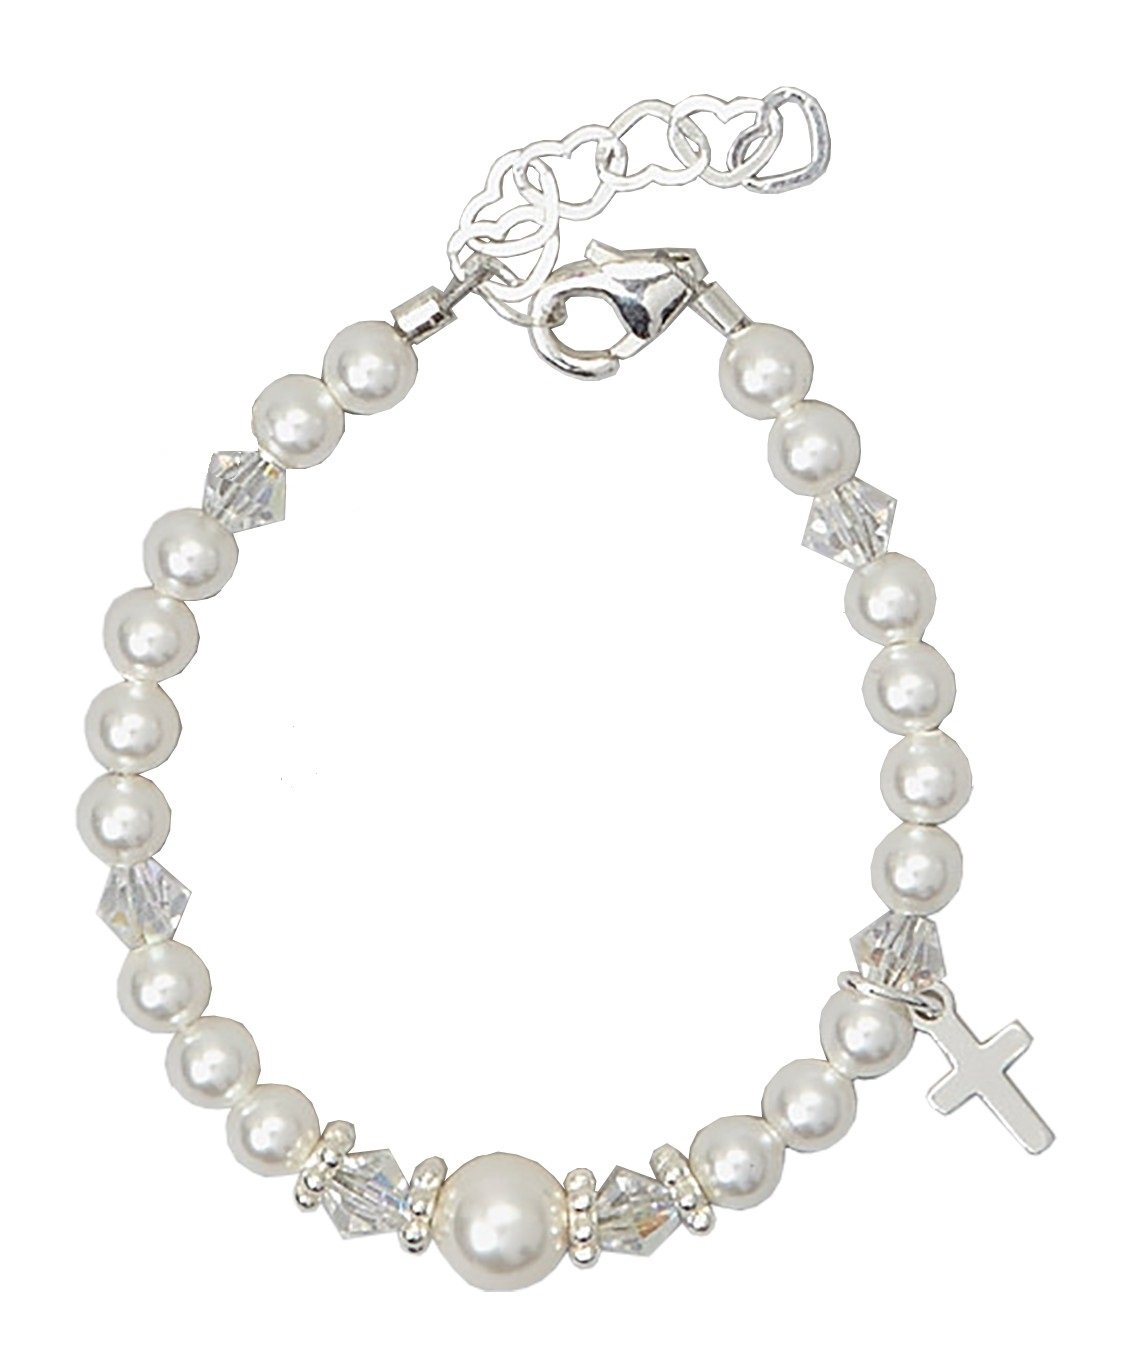 Christening Sterling Silver Cross Charm with White Swarovski Simulated Pearls and Crystals Keepsake Girl Baby Bracelet (BCRS) Crystal Dream AZBCRS_S